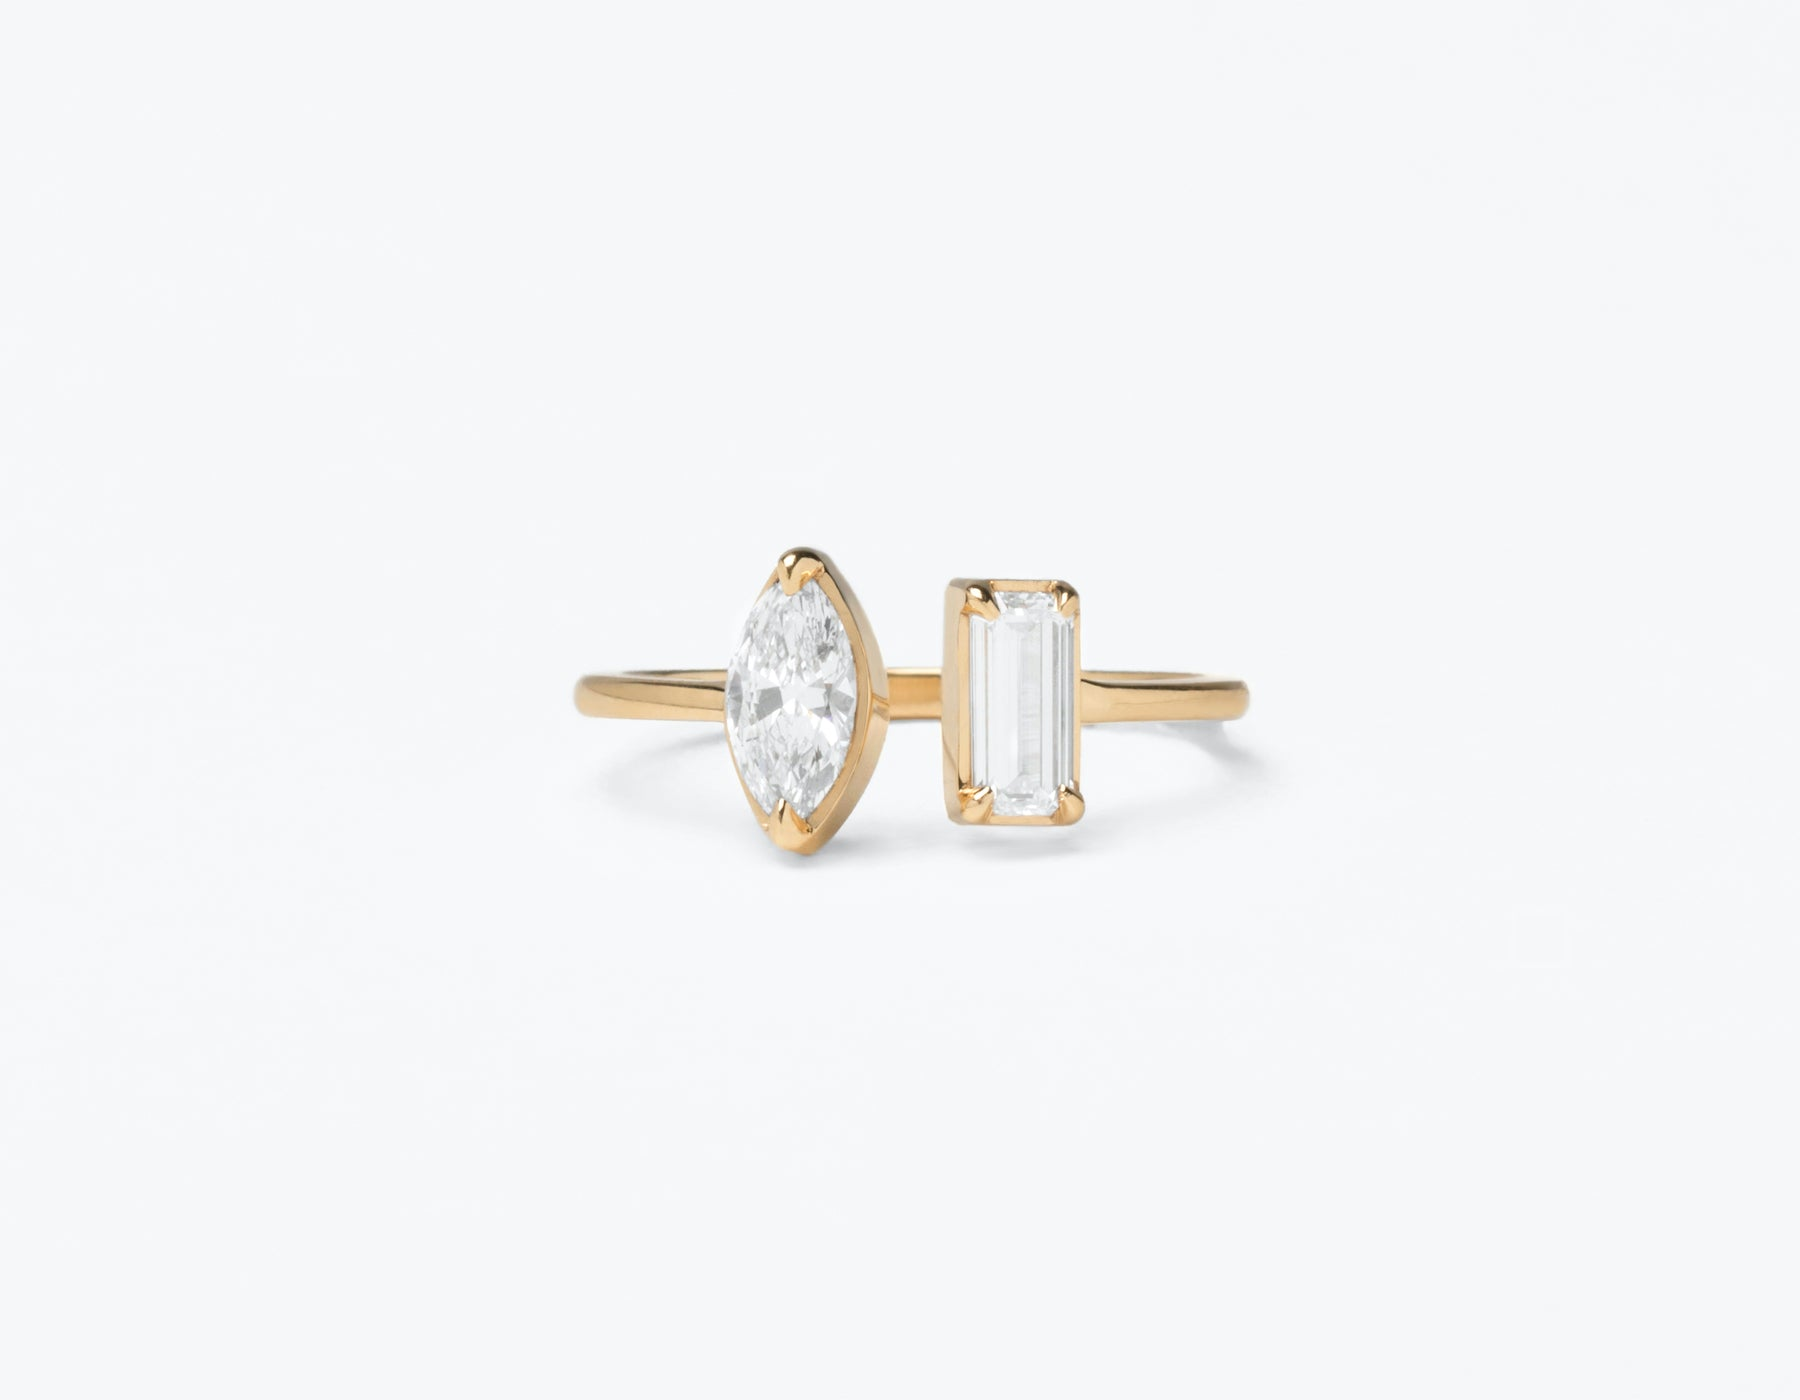 Modern Minimalist 18K solid gold Mix Baguette and Marquise Diamond Cuff Ring Vrai and Oro, 18K Yellow Gold